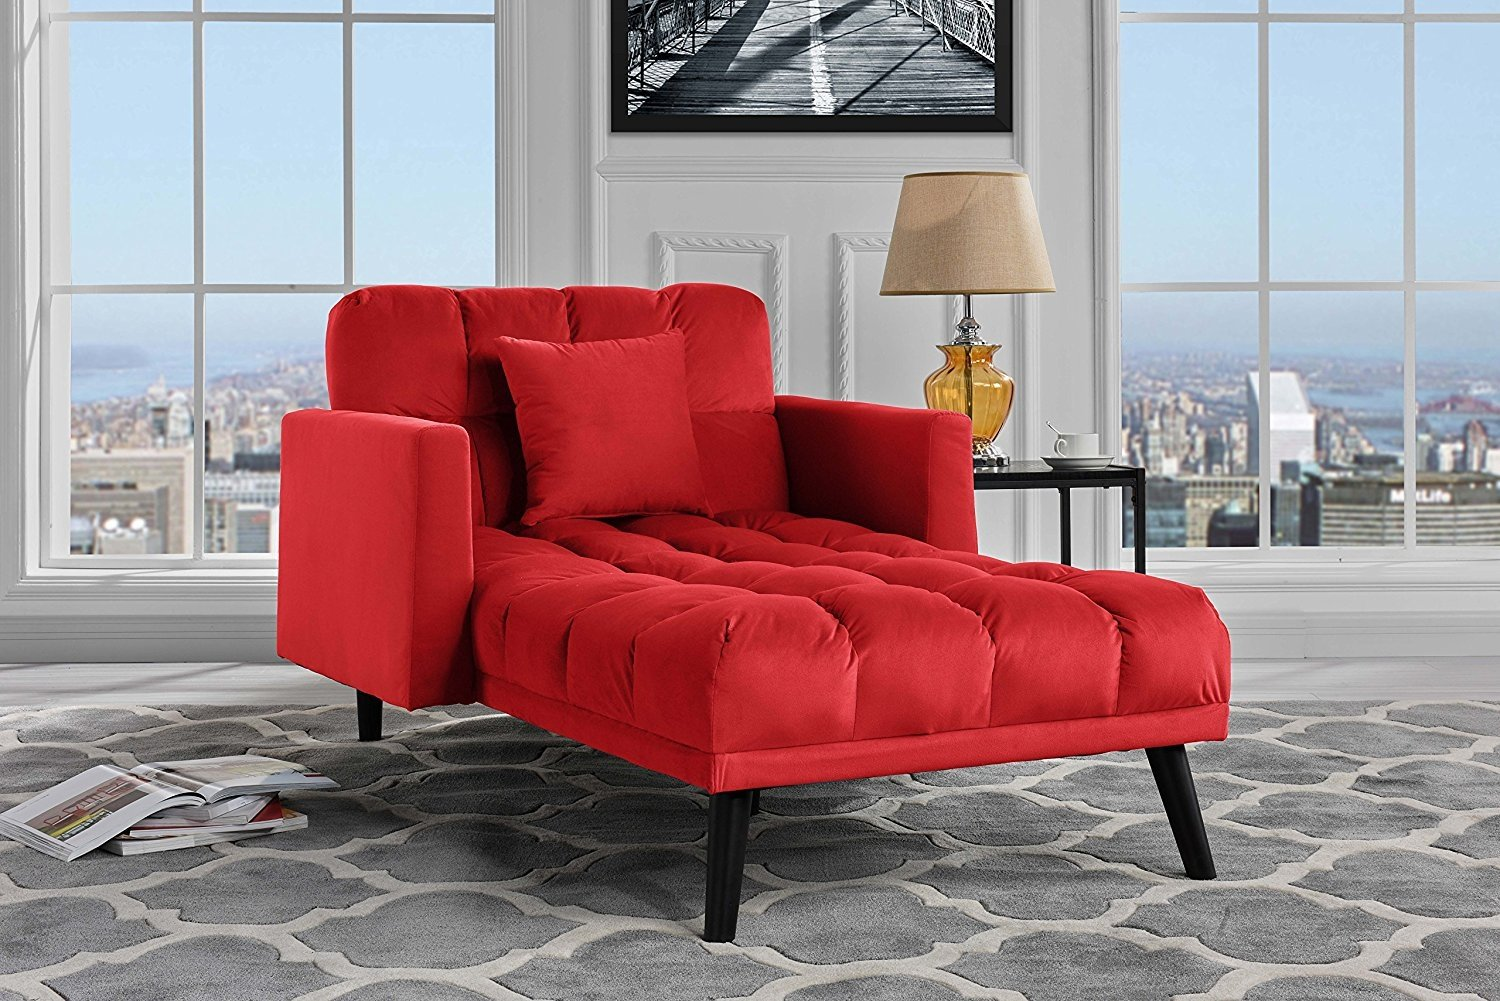 Details About Velvet Fabric Recliner Elegant Sleeper Chaise Lounge Futon Single Seat Red